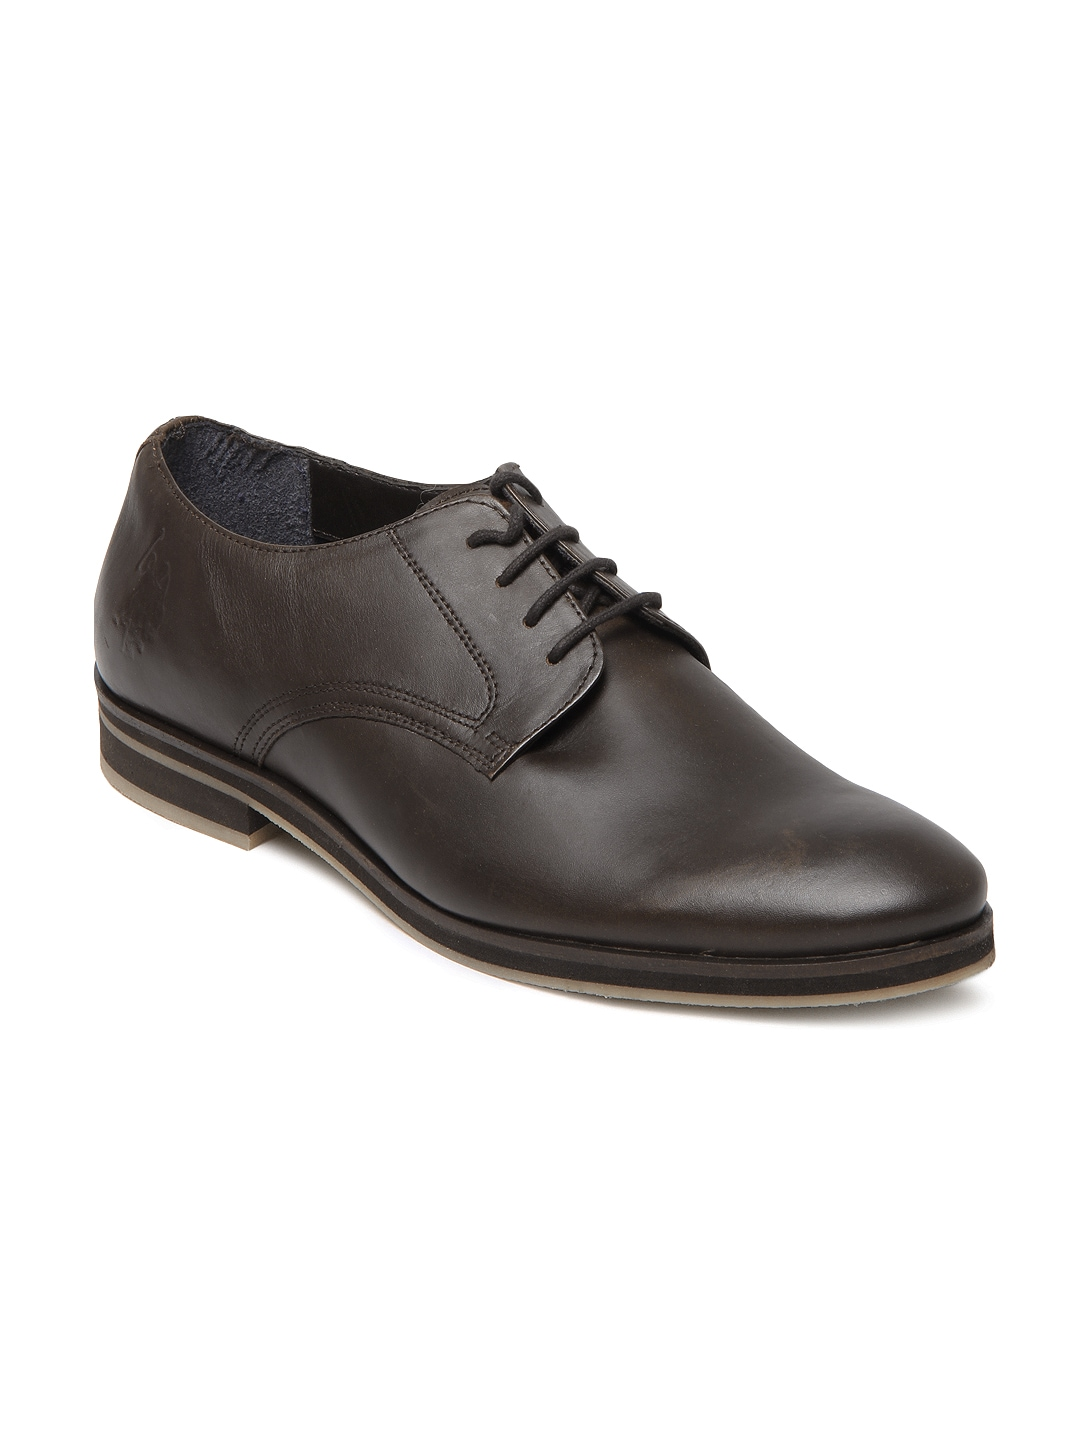 buy u s polo assn brown leather formal shoes 633